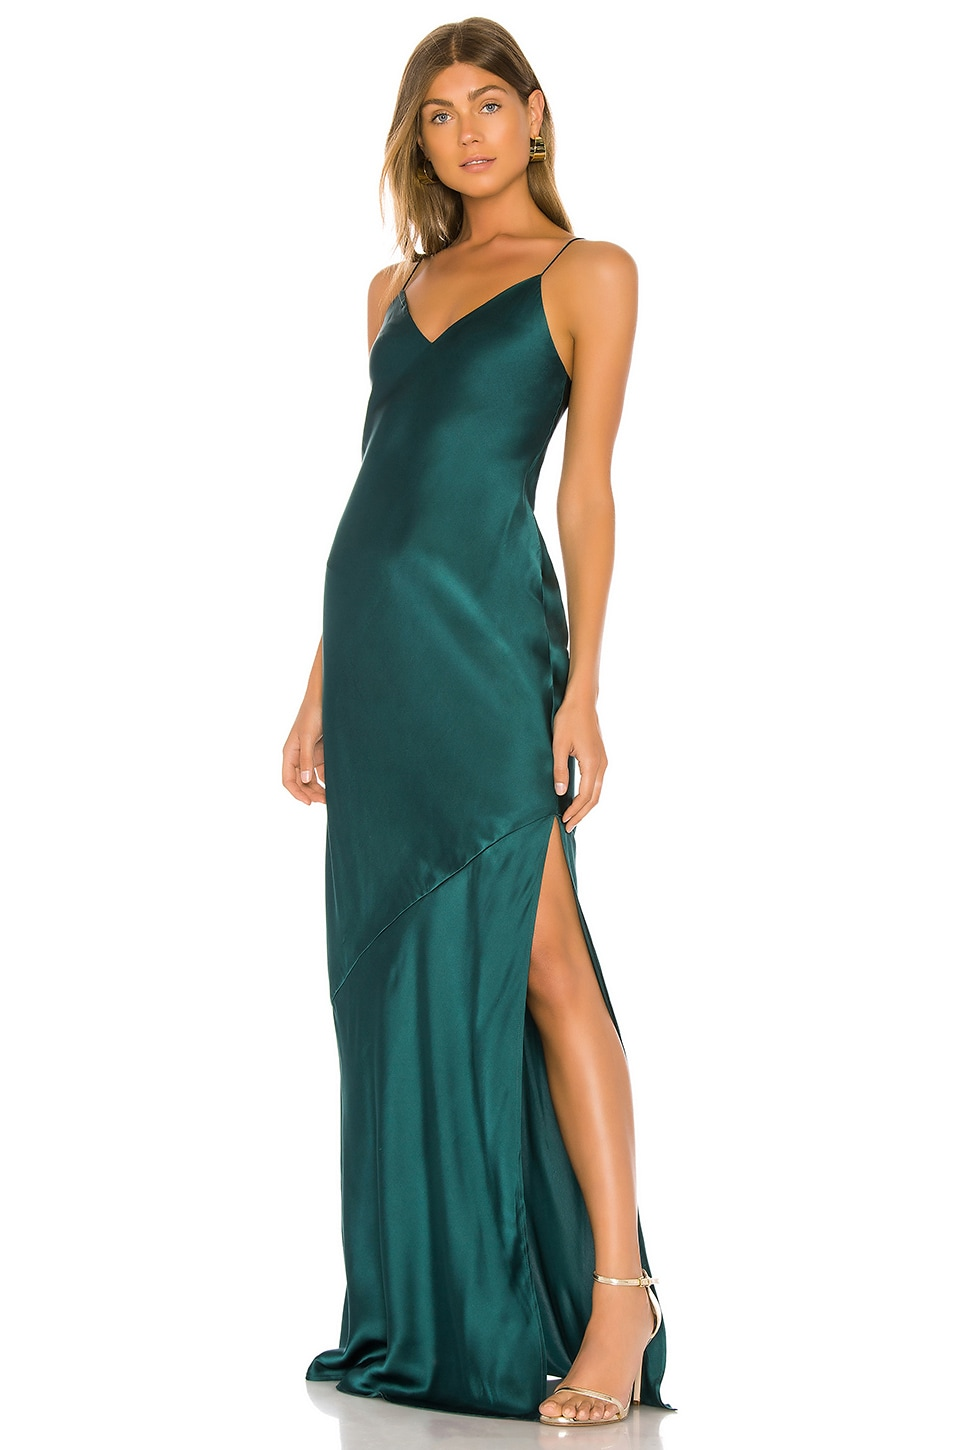 CAMI NYC The Raven Gown in Deep Sea